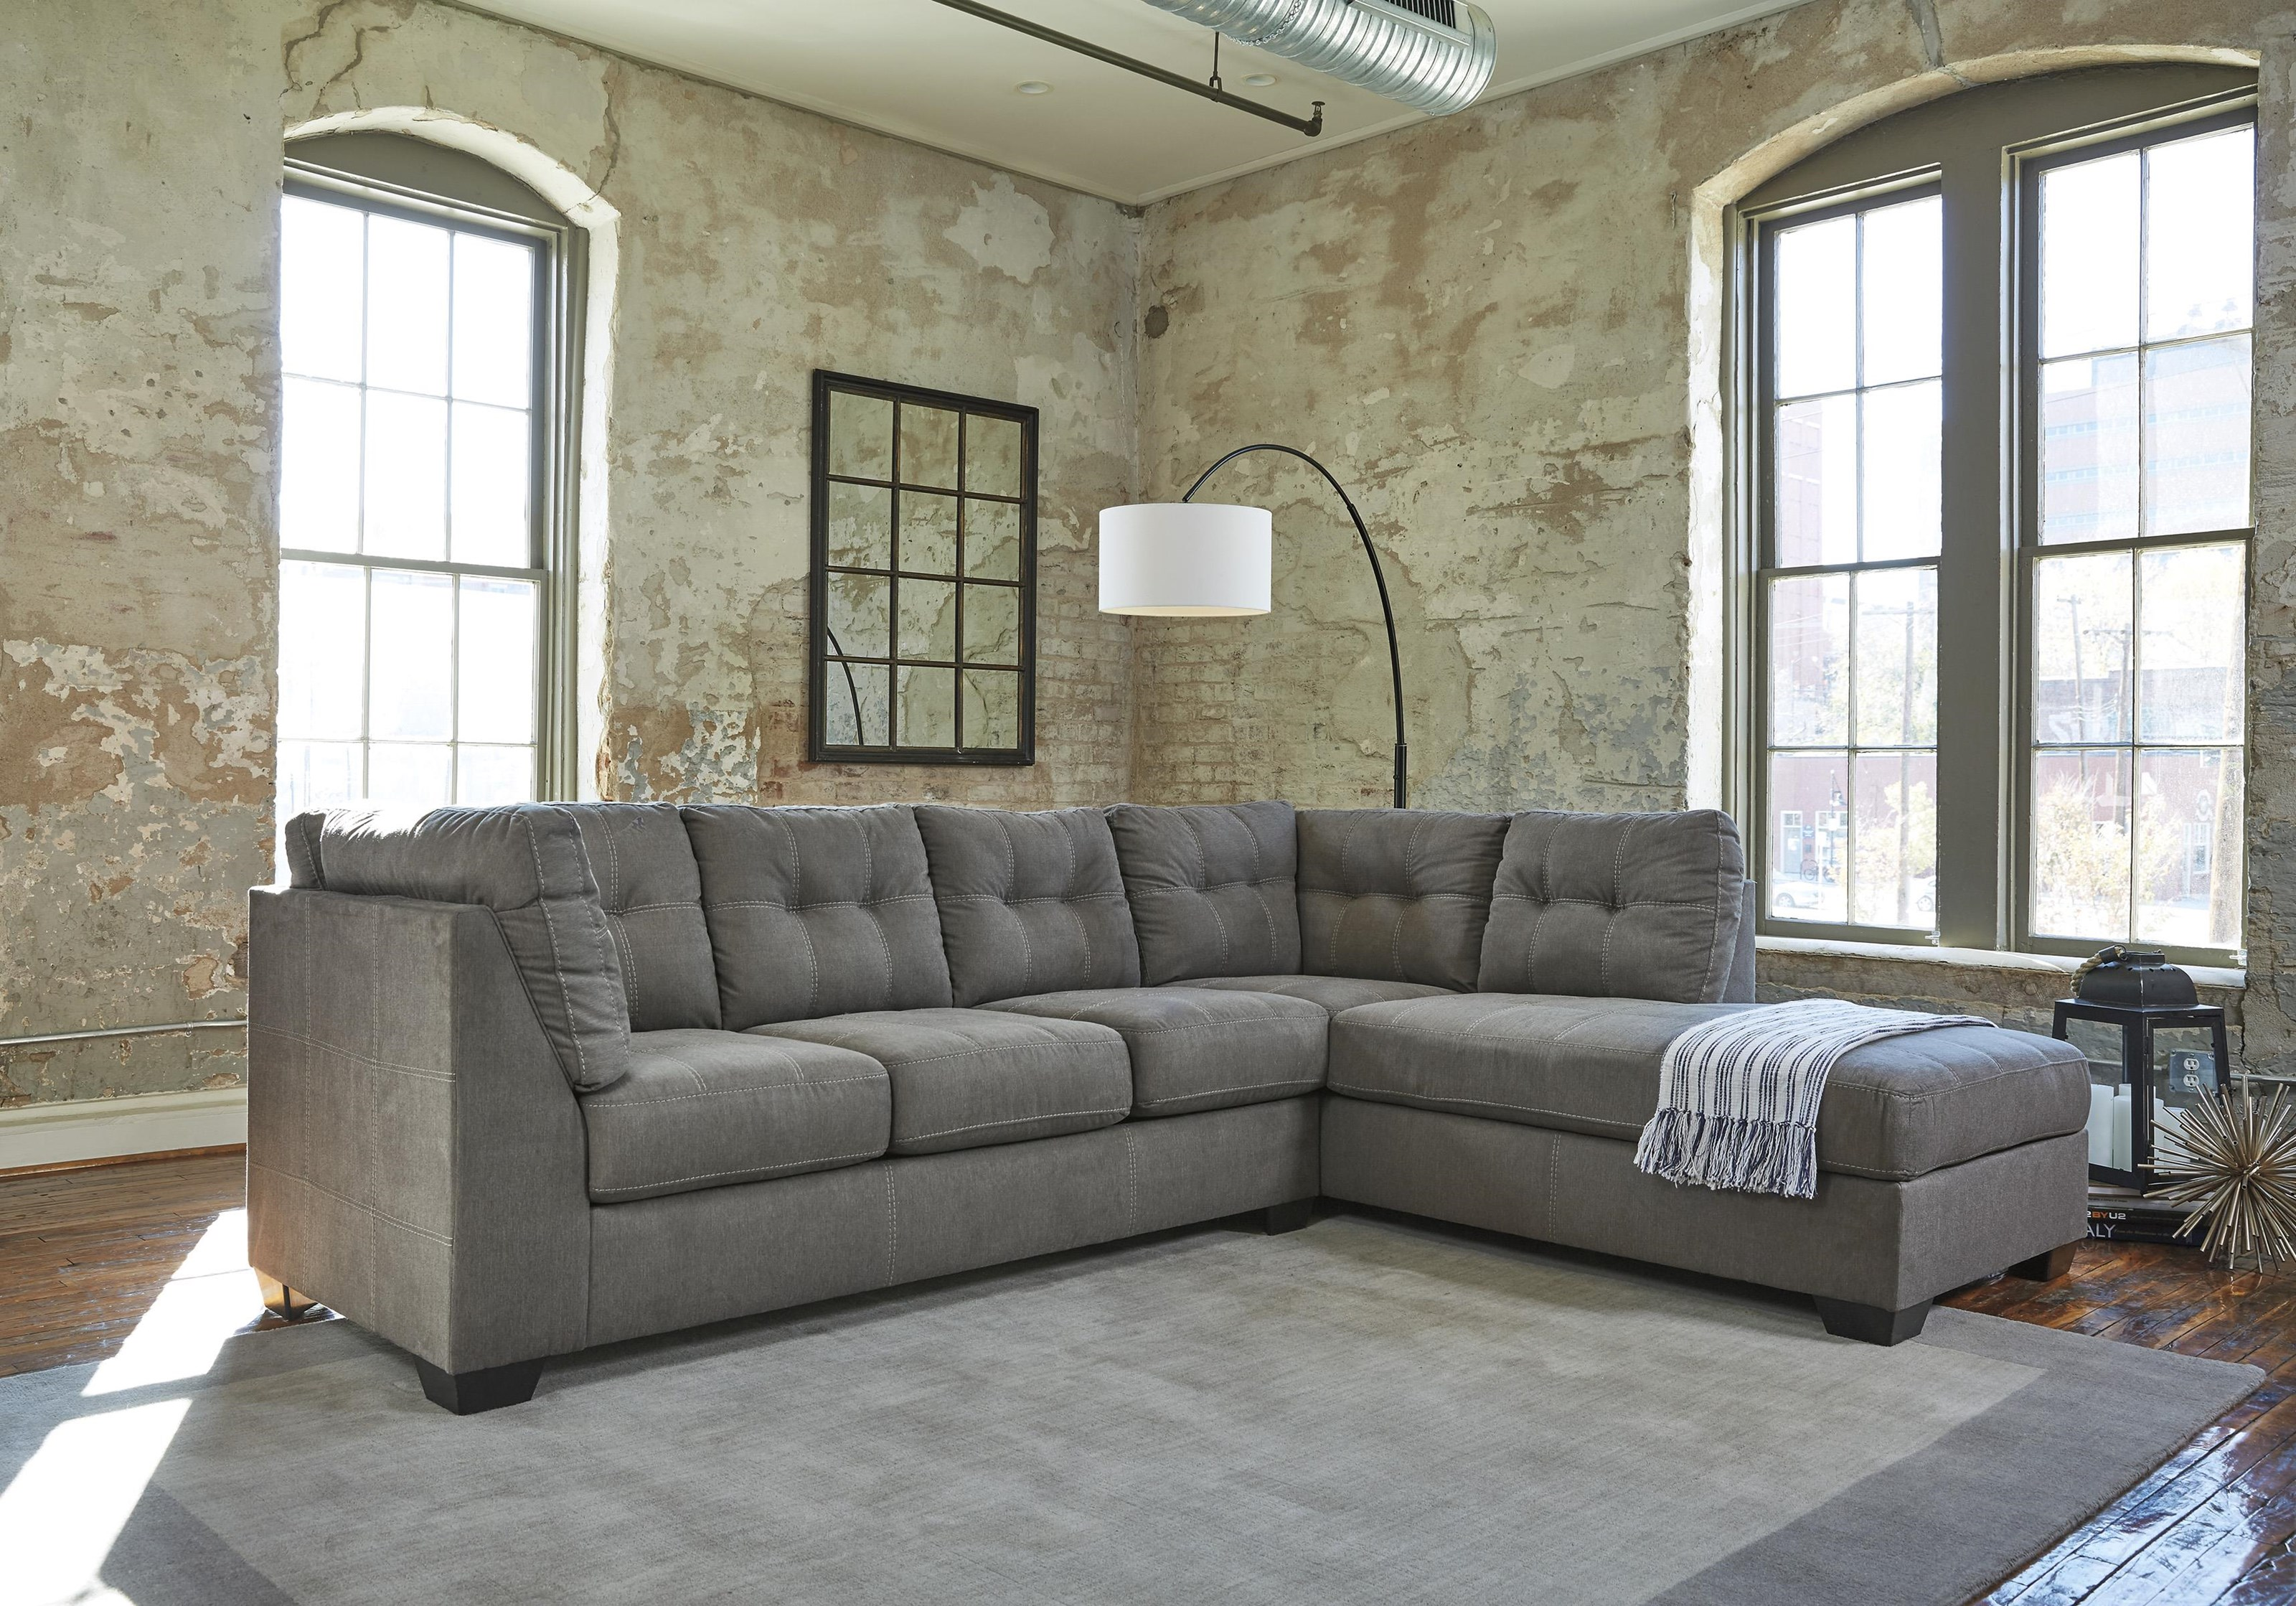 34727 Pitkin 2-Piece Sectional by Ashley Furniture at Furniture and ApplianceMart